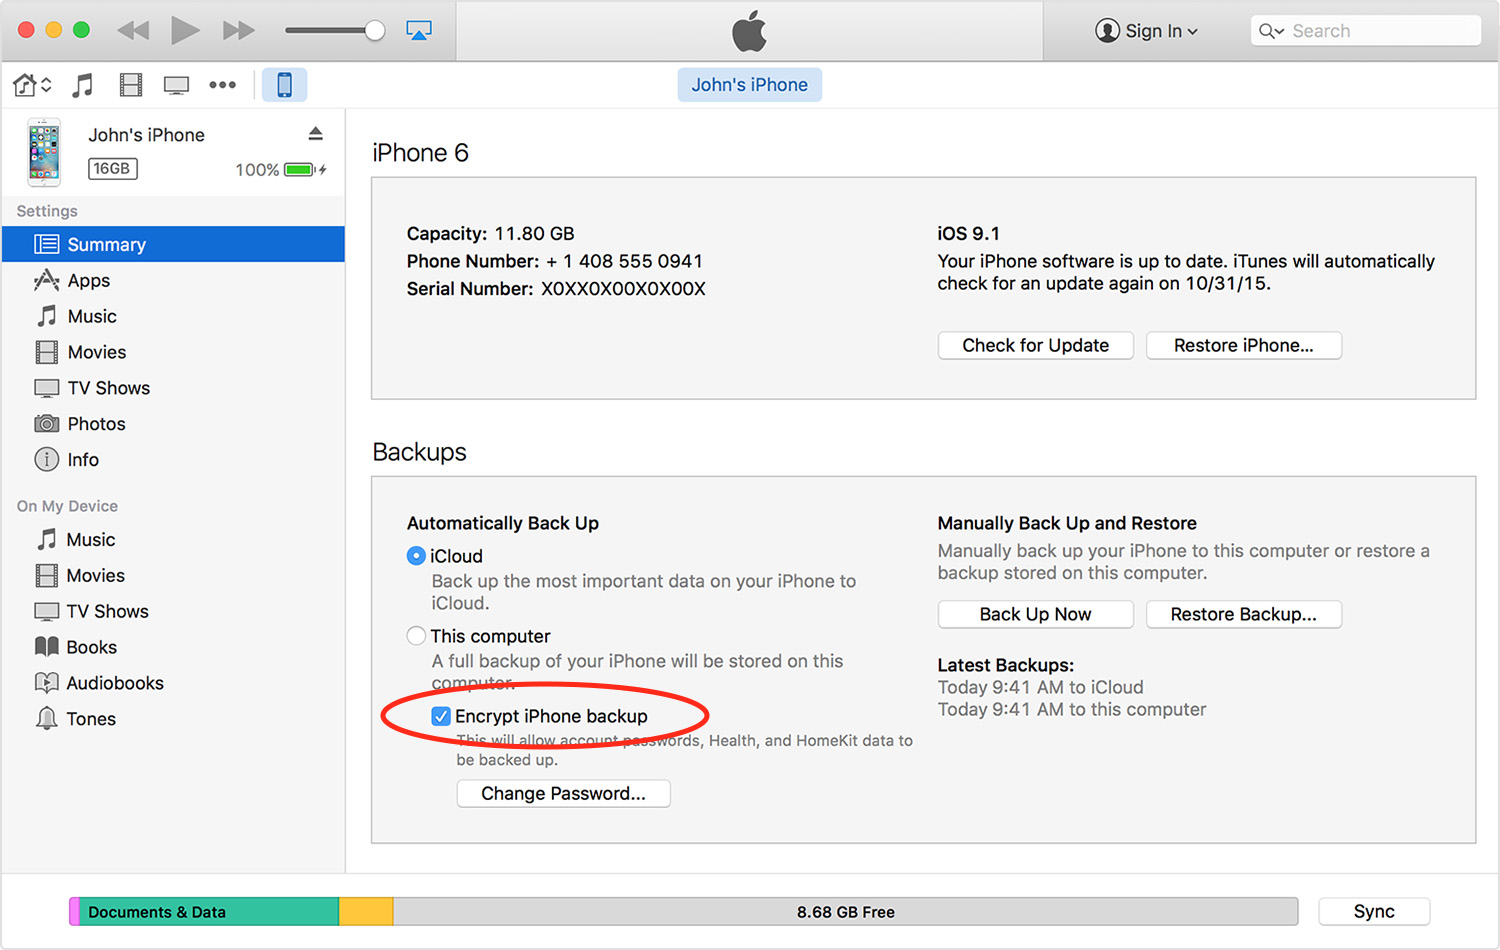 Encrypt your iPhone and iPad backups to keep your private data safe